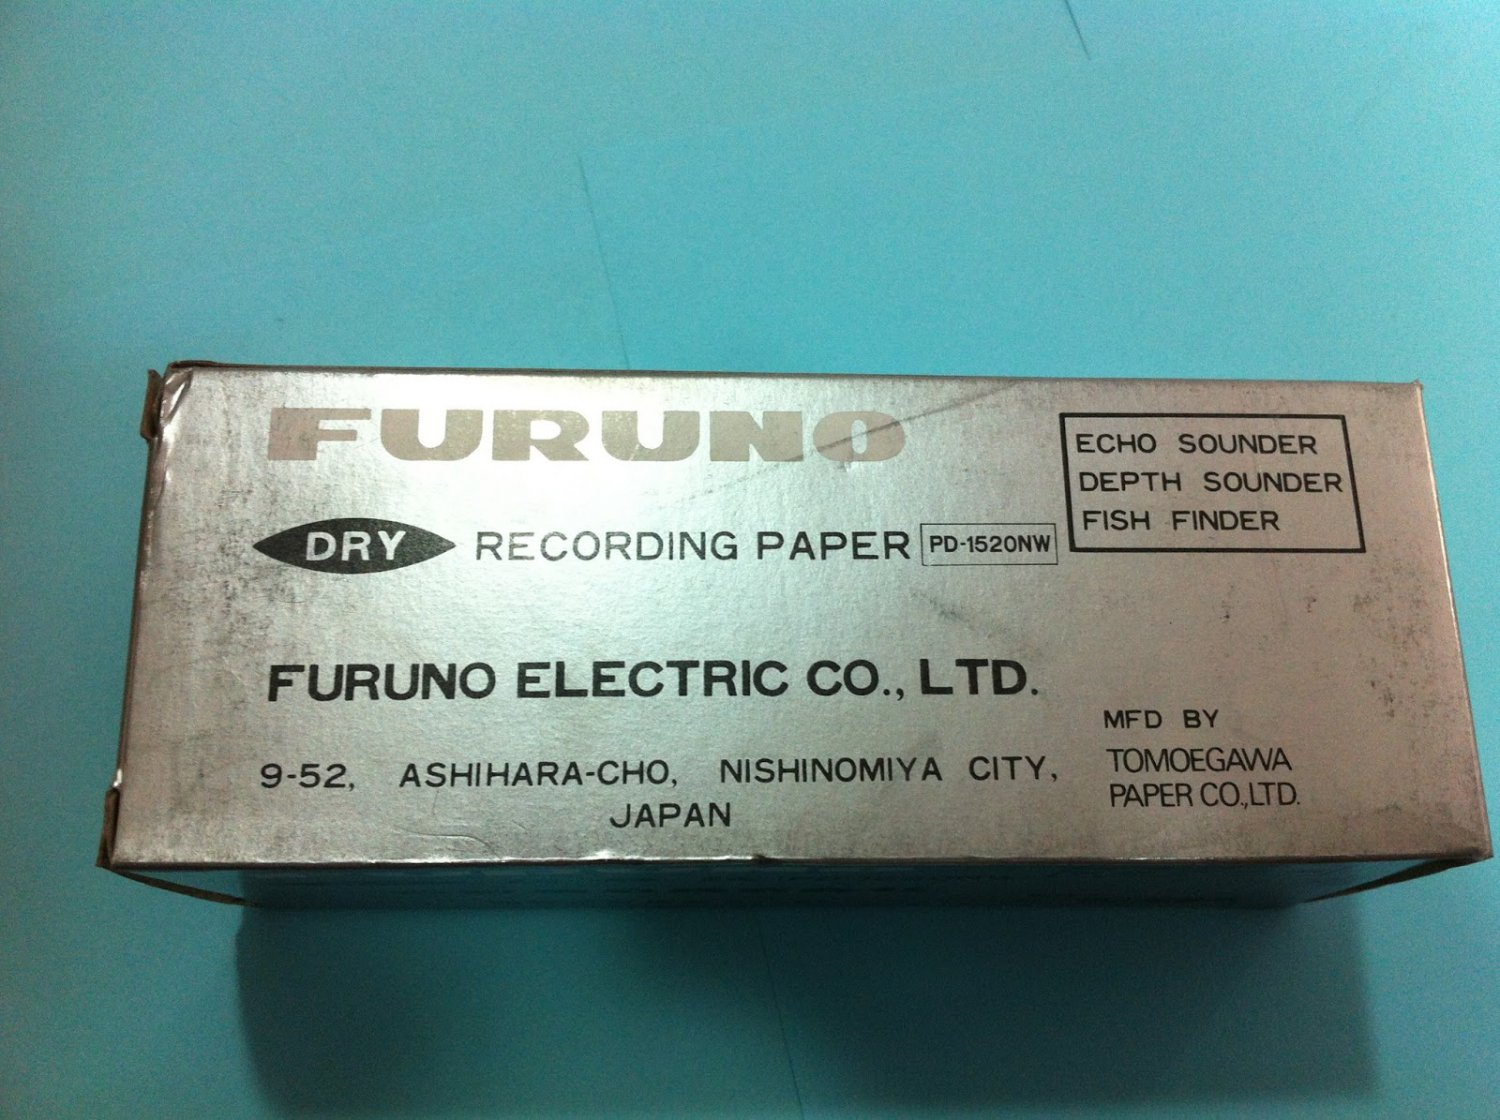 Lot of 4 Furuno Dry Recording Paper Type : 1520NW